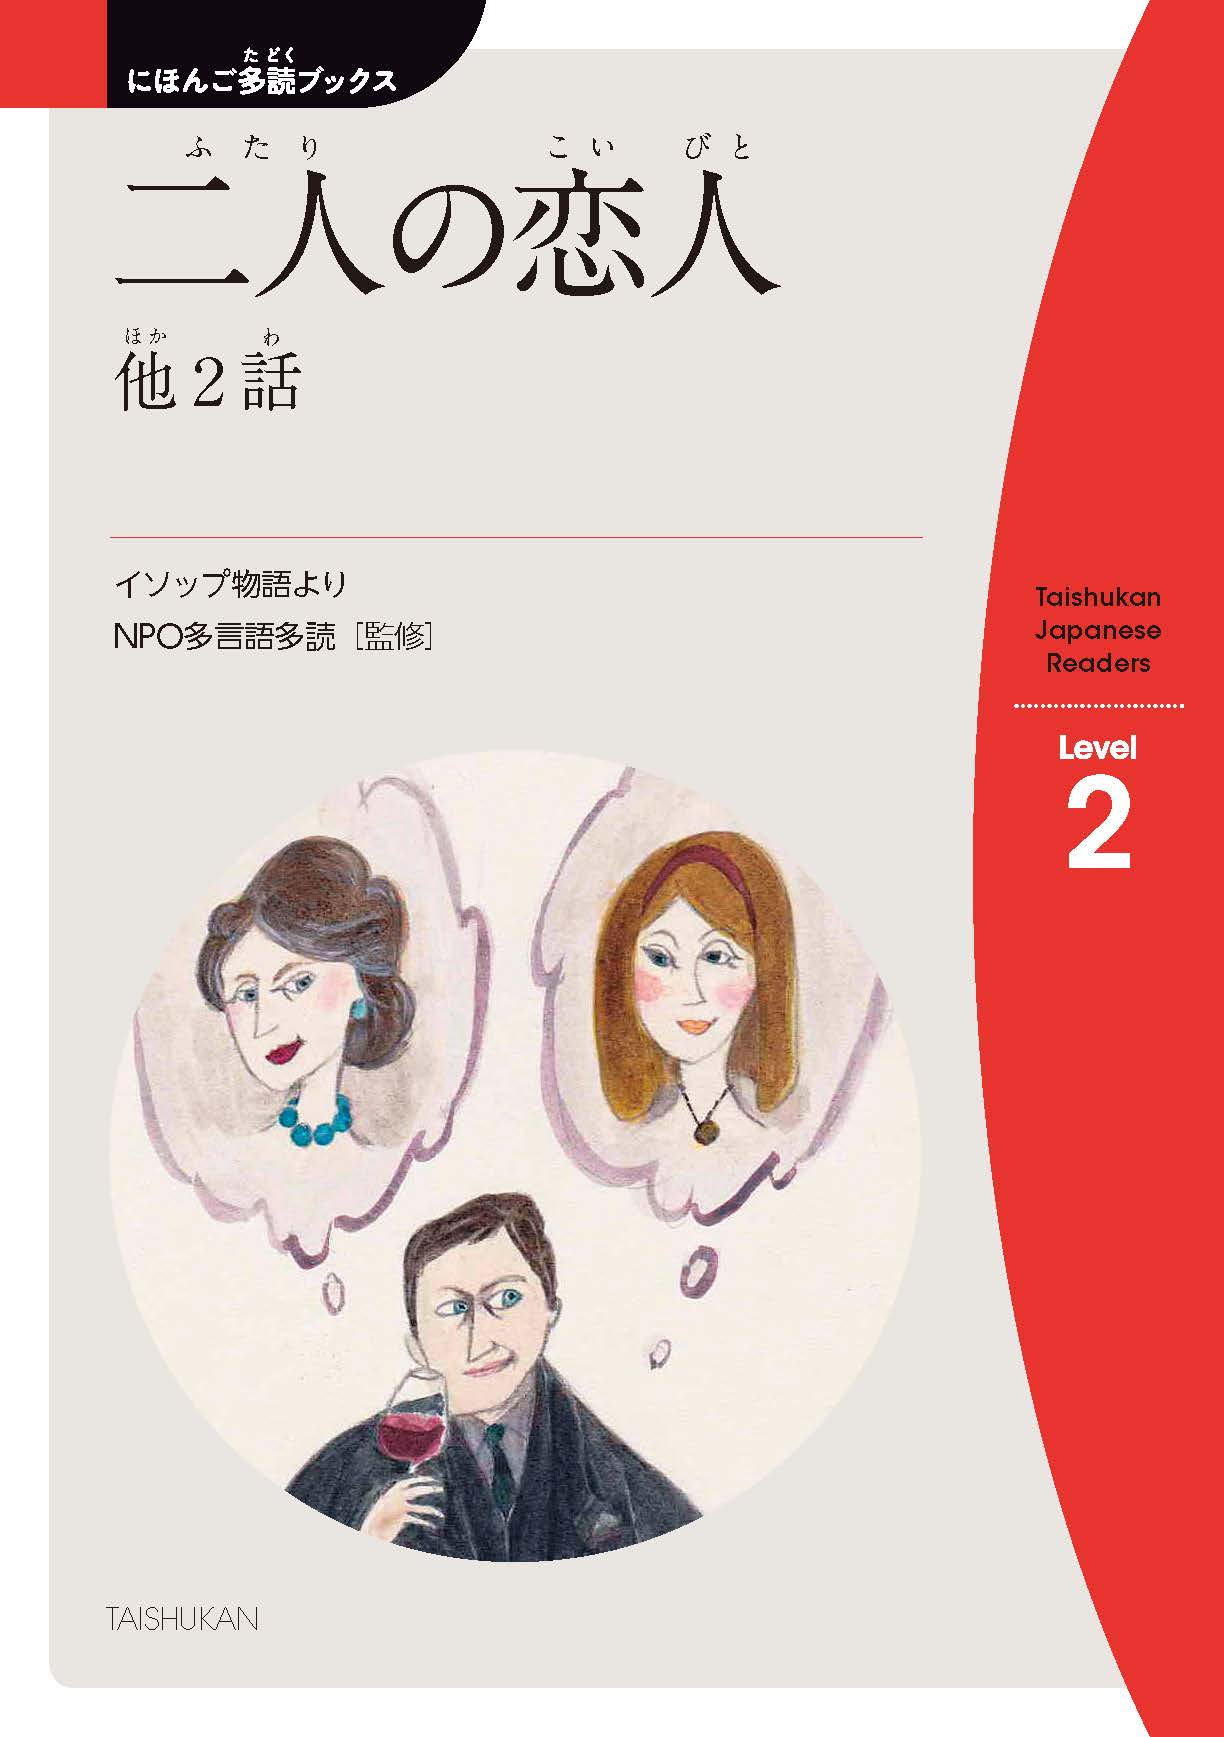 vol.2-4 二人(ふたり)の恋人(こいびと) 他2話  Two Lovers and Two Other Stories